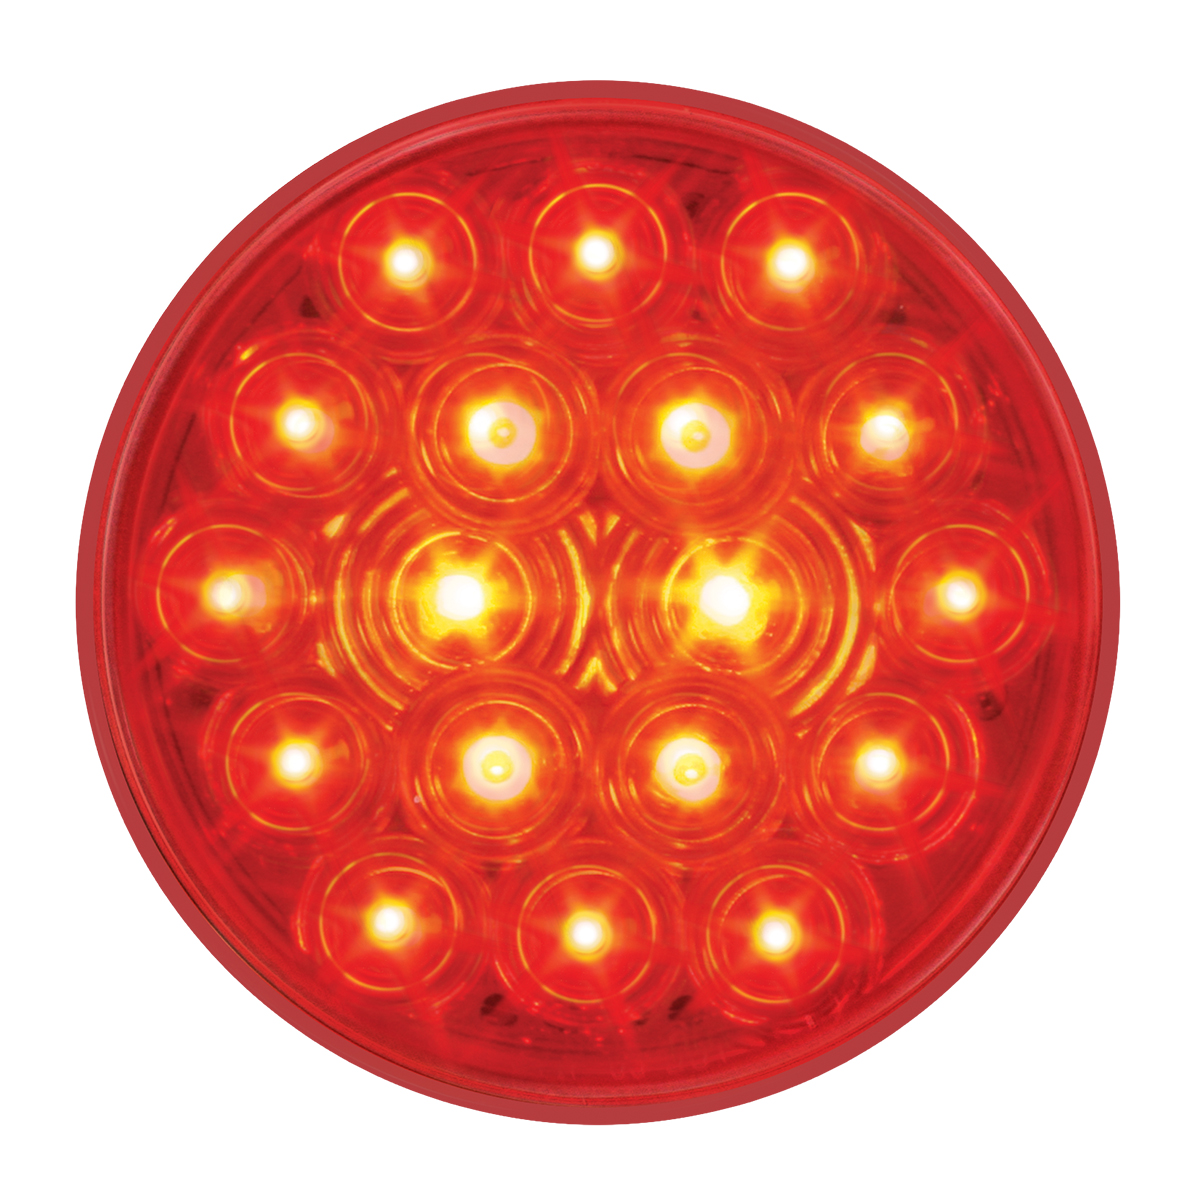 "#76452 - 4"" Round Fleet LED Flat Red/Red Light"